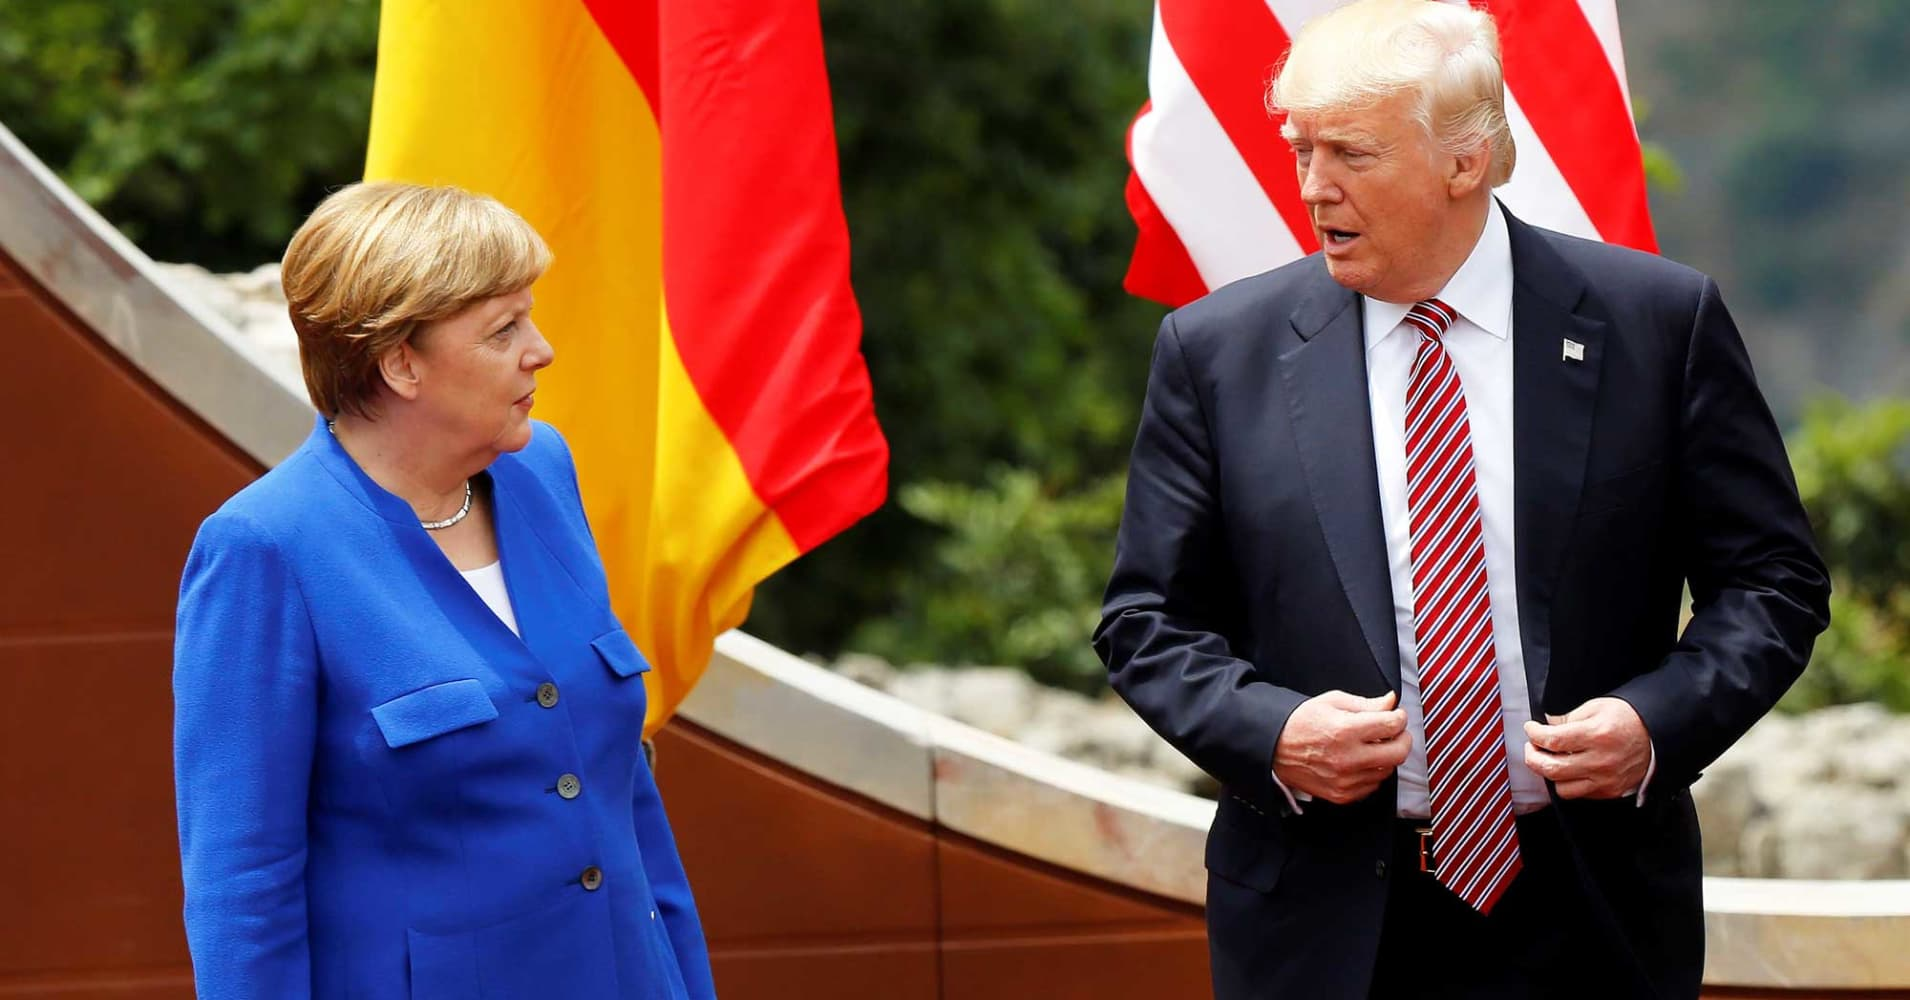 Trump reportedly calls Germans 'very bad,' threatens to end German car sales